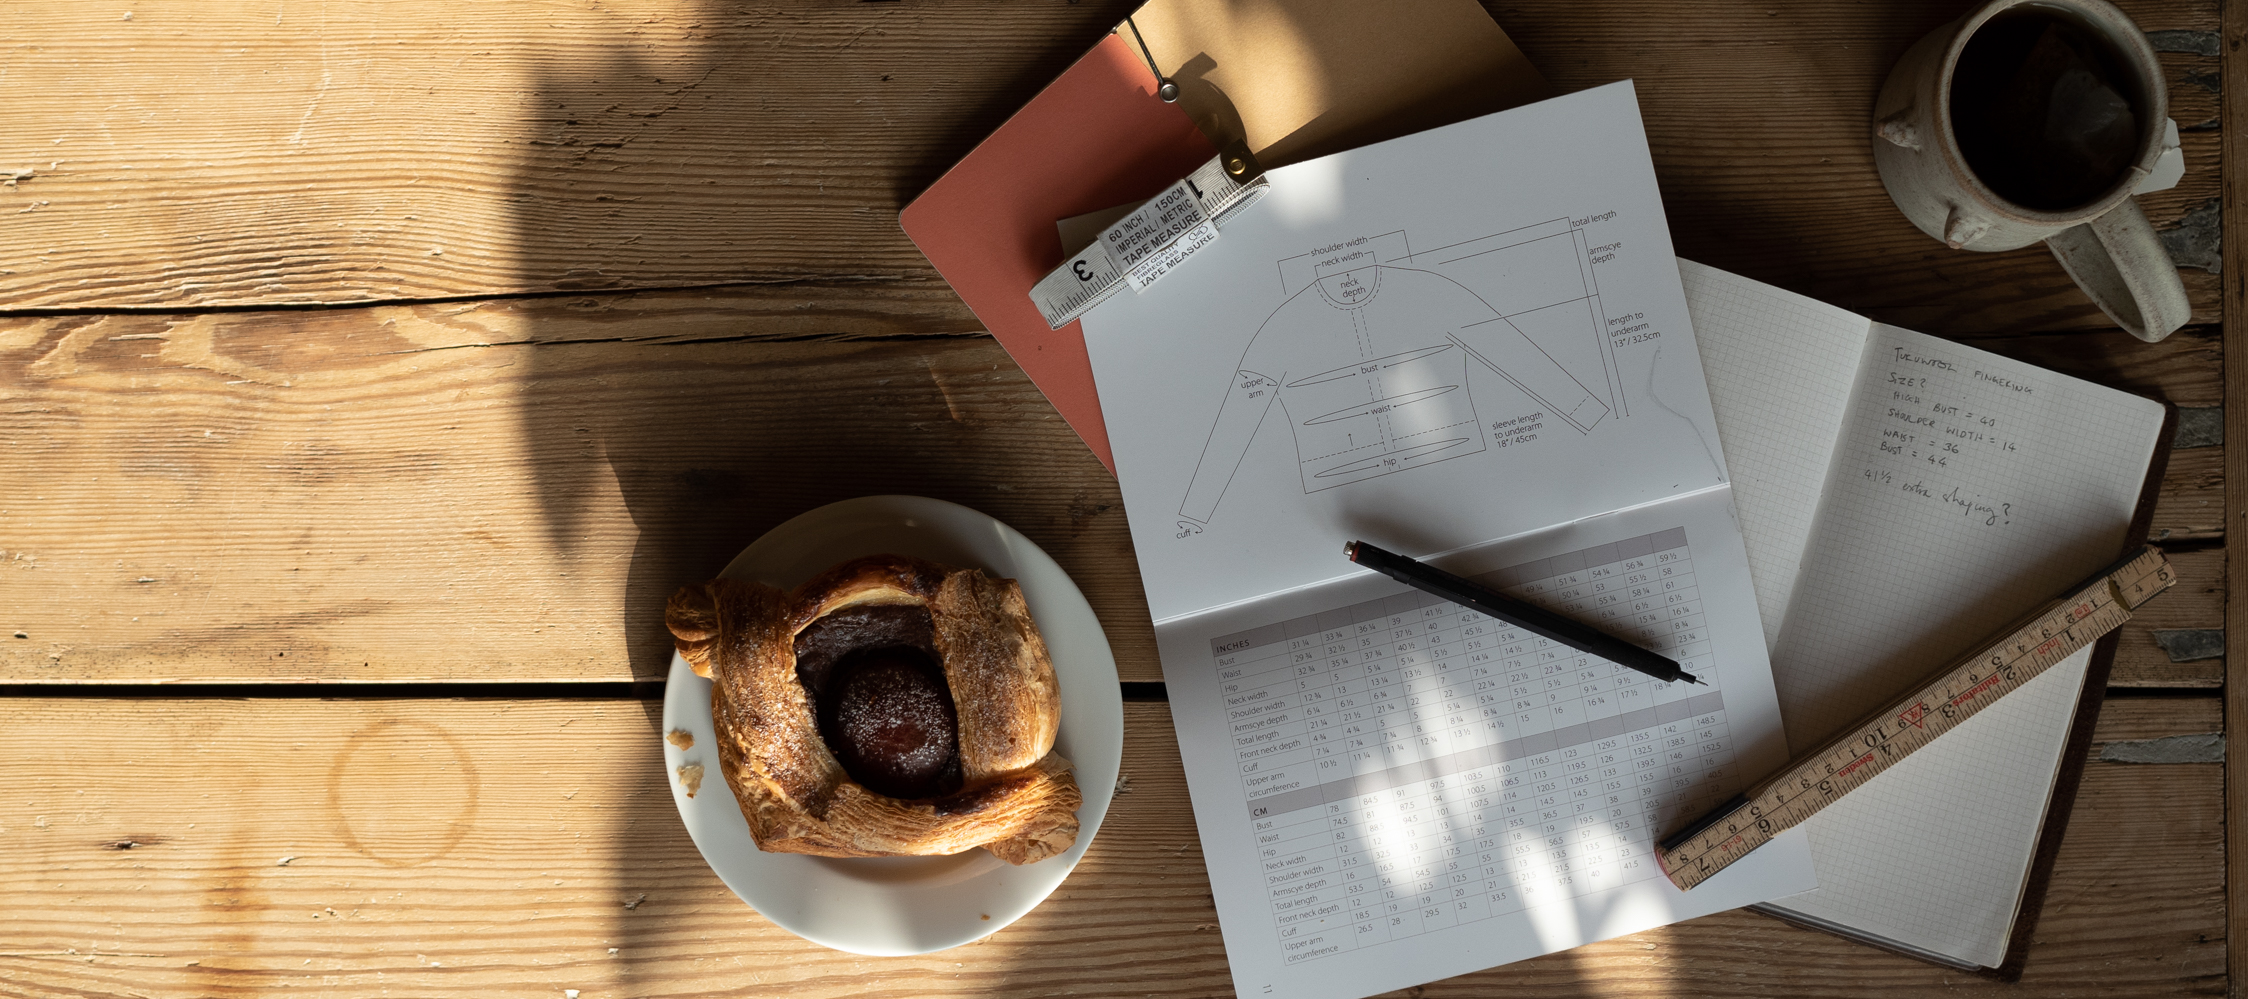 a pastry, coffee, knitting pattern, notebooks, pencil and measuring tape